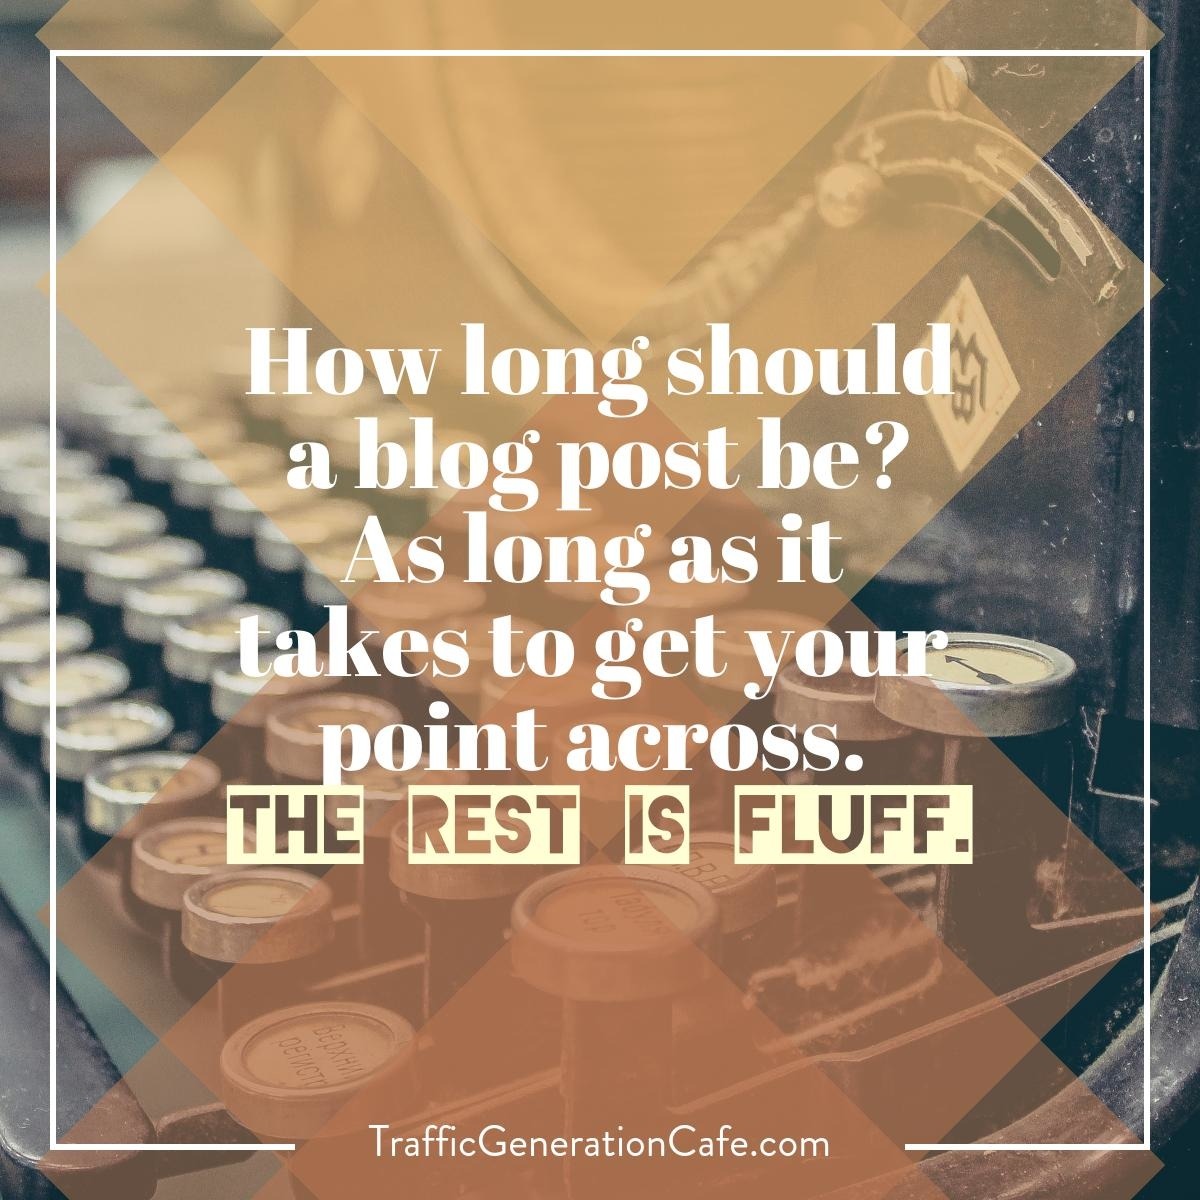 How long a blog post should be? Only as long as it needs to be.